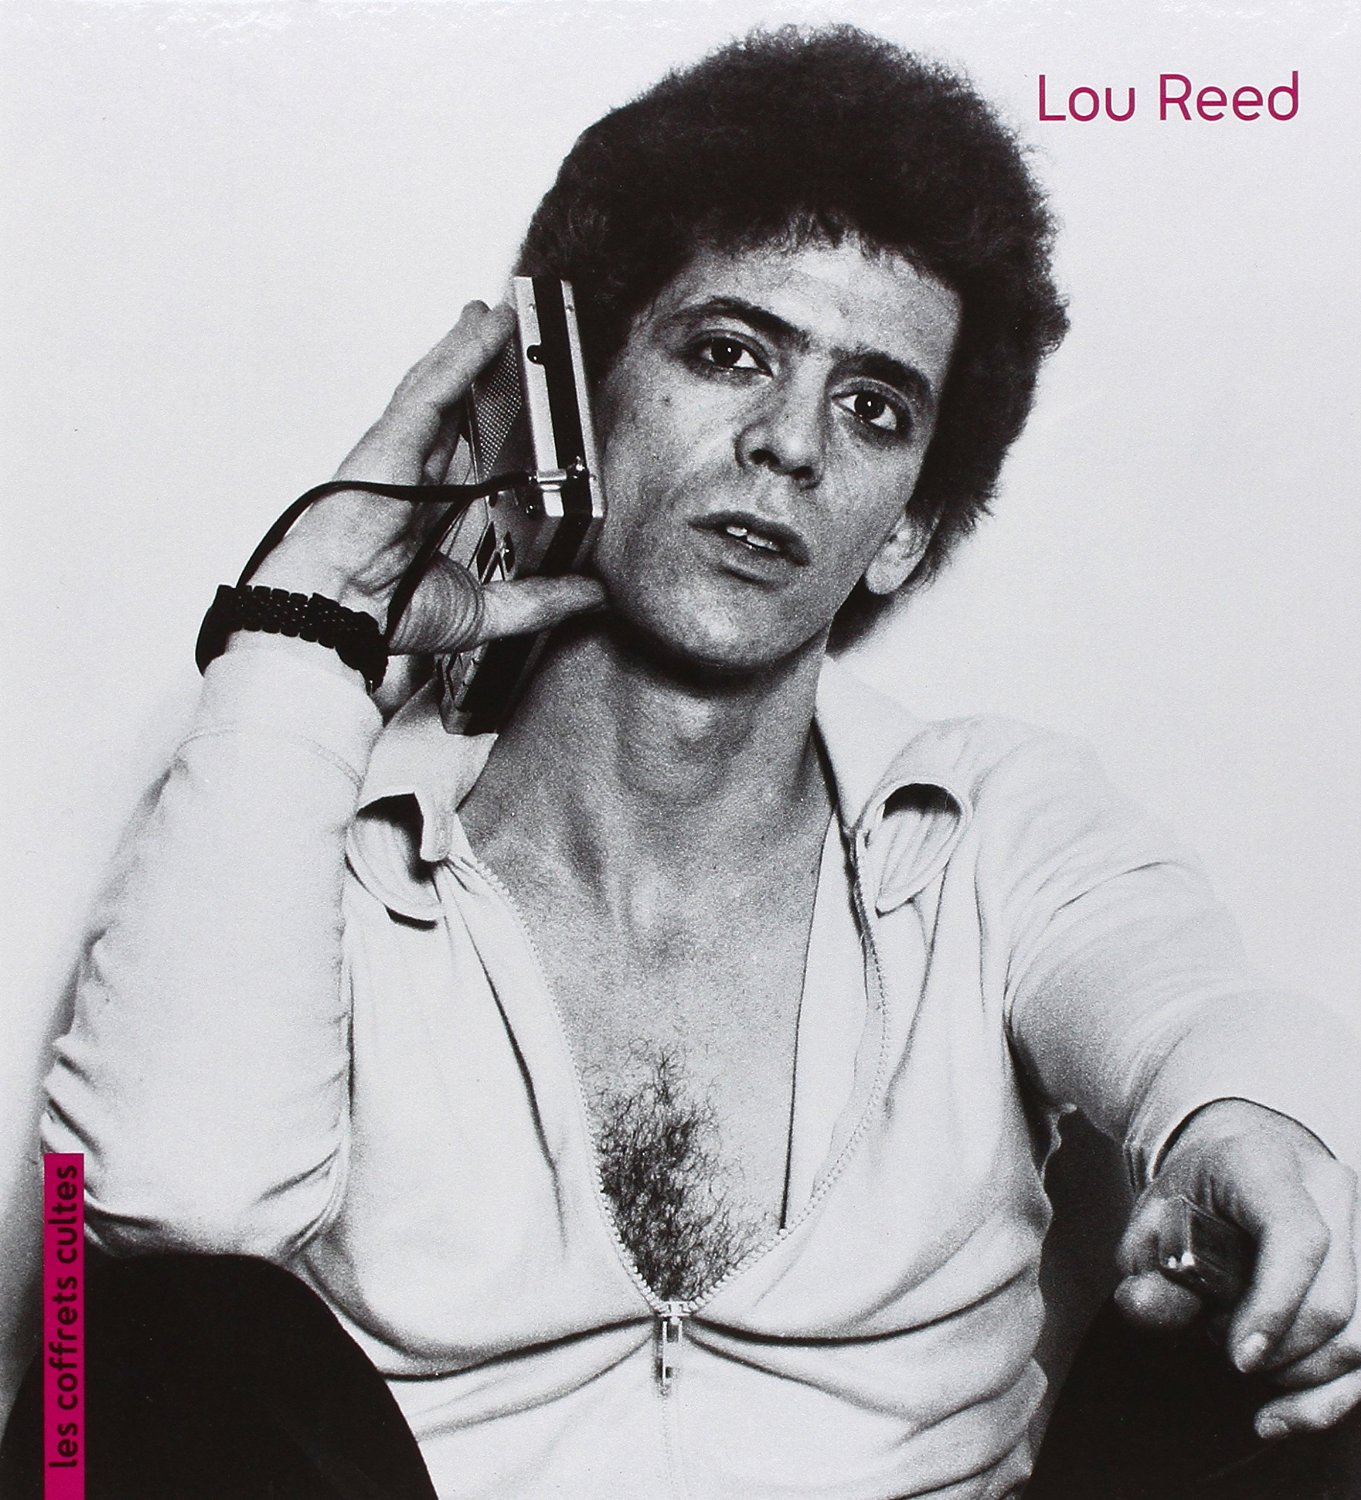 LOU REED - COFFRET CULTE (2 CD + PHOTOS) (CD)